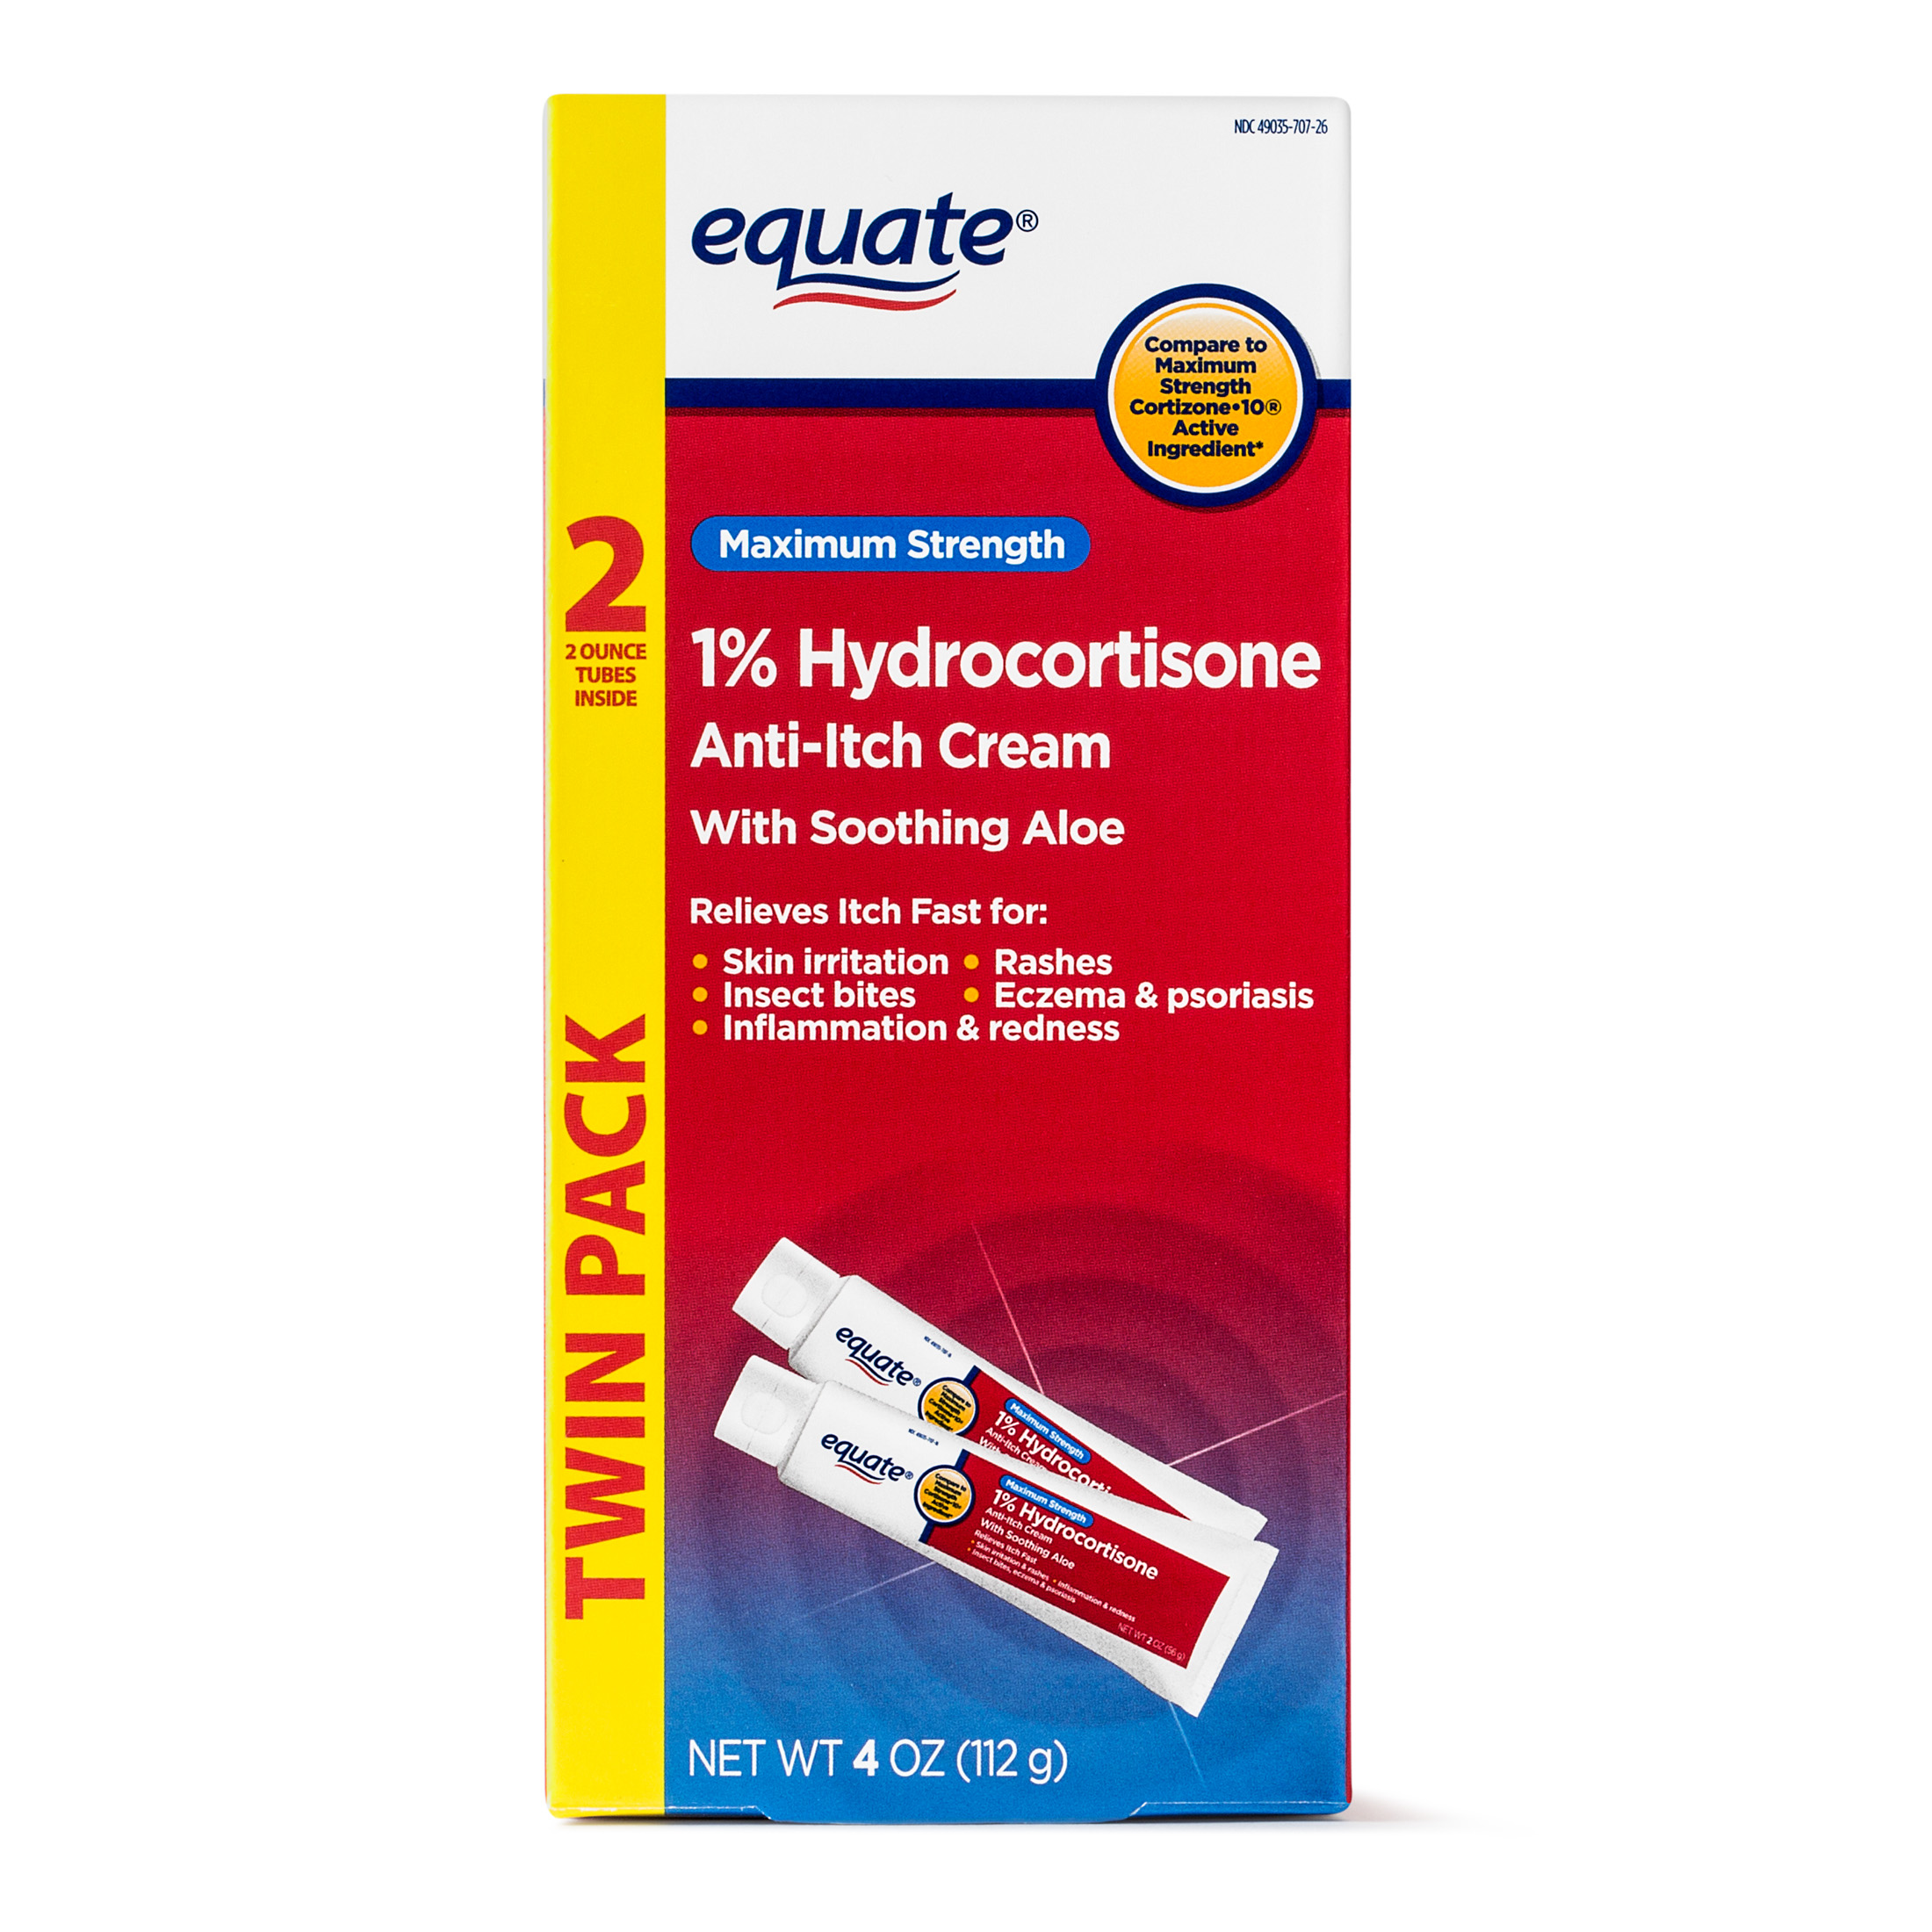 Equate Maximum Strength Anti-Itch Hydrocortisone Cream, 2 Oz, 2 Pk